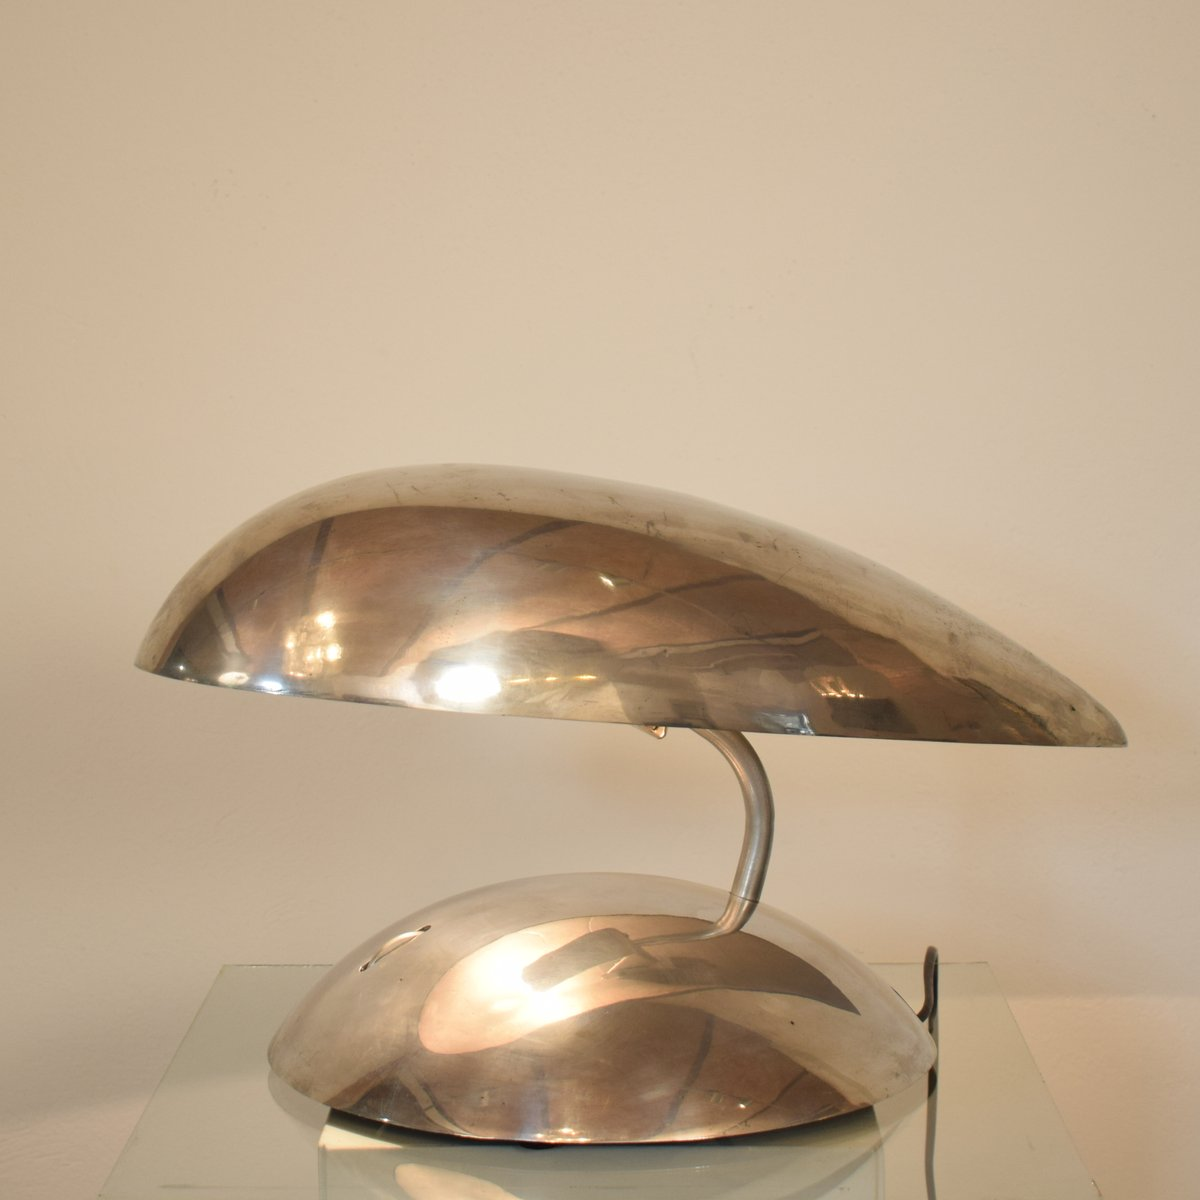 polished aluminum space age table lamp 1980s for sale at pamono. Black Bedroom Furniture Sets. Home Design Ideas